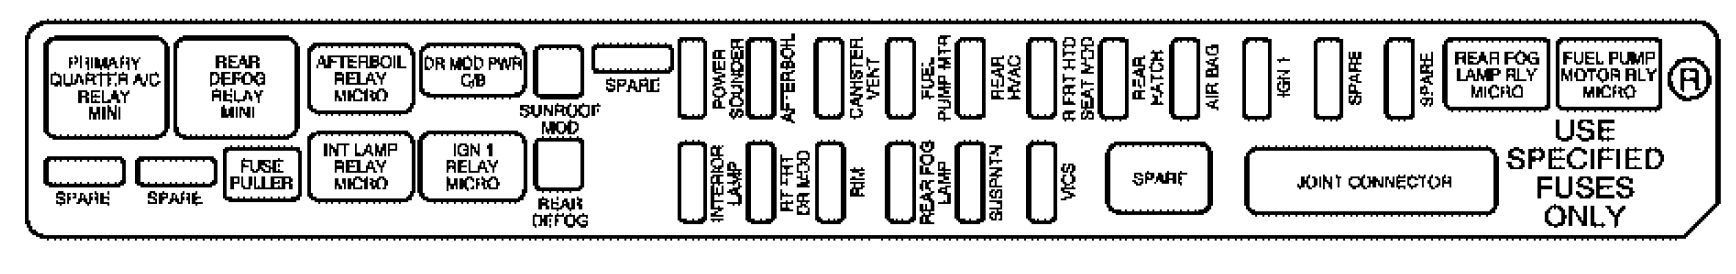 Cadillac SRX fuse box ear compartment passengers side cadillac srx mk1 (first generation; 2004 2006) fuse box 2006 cadillac sts fuse box diagram at gsmx.co